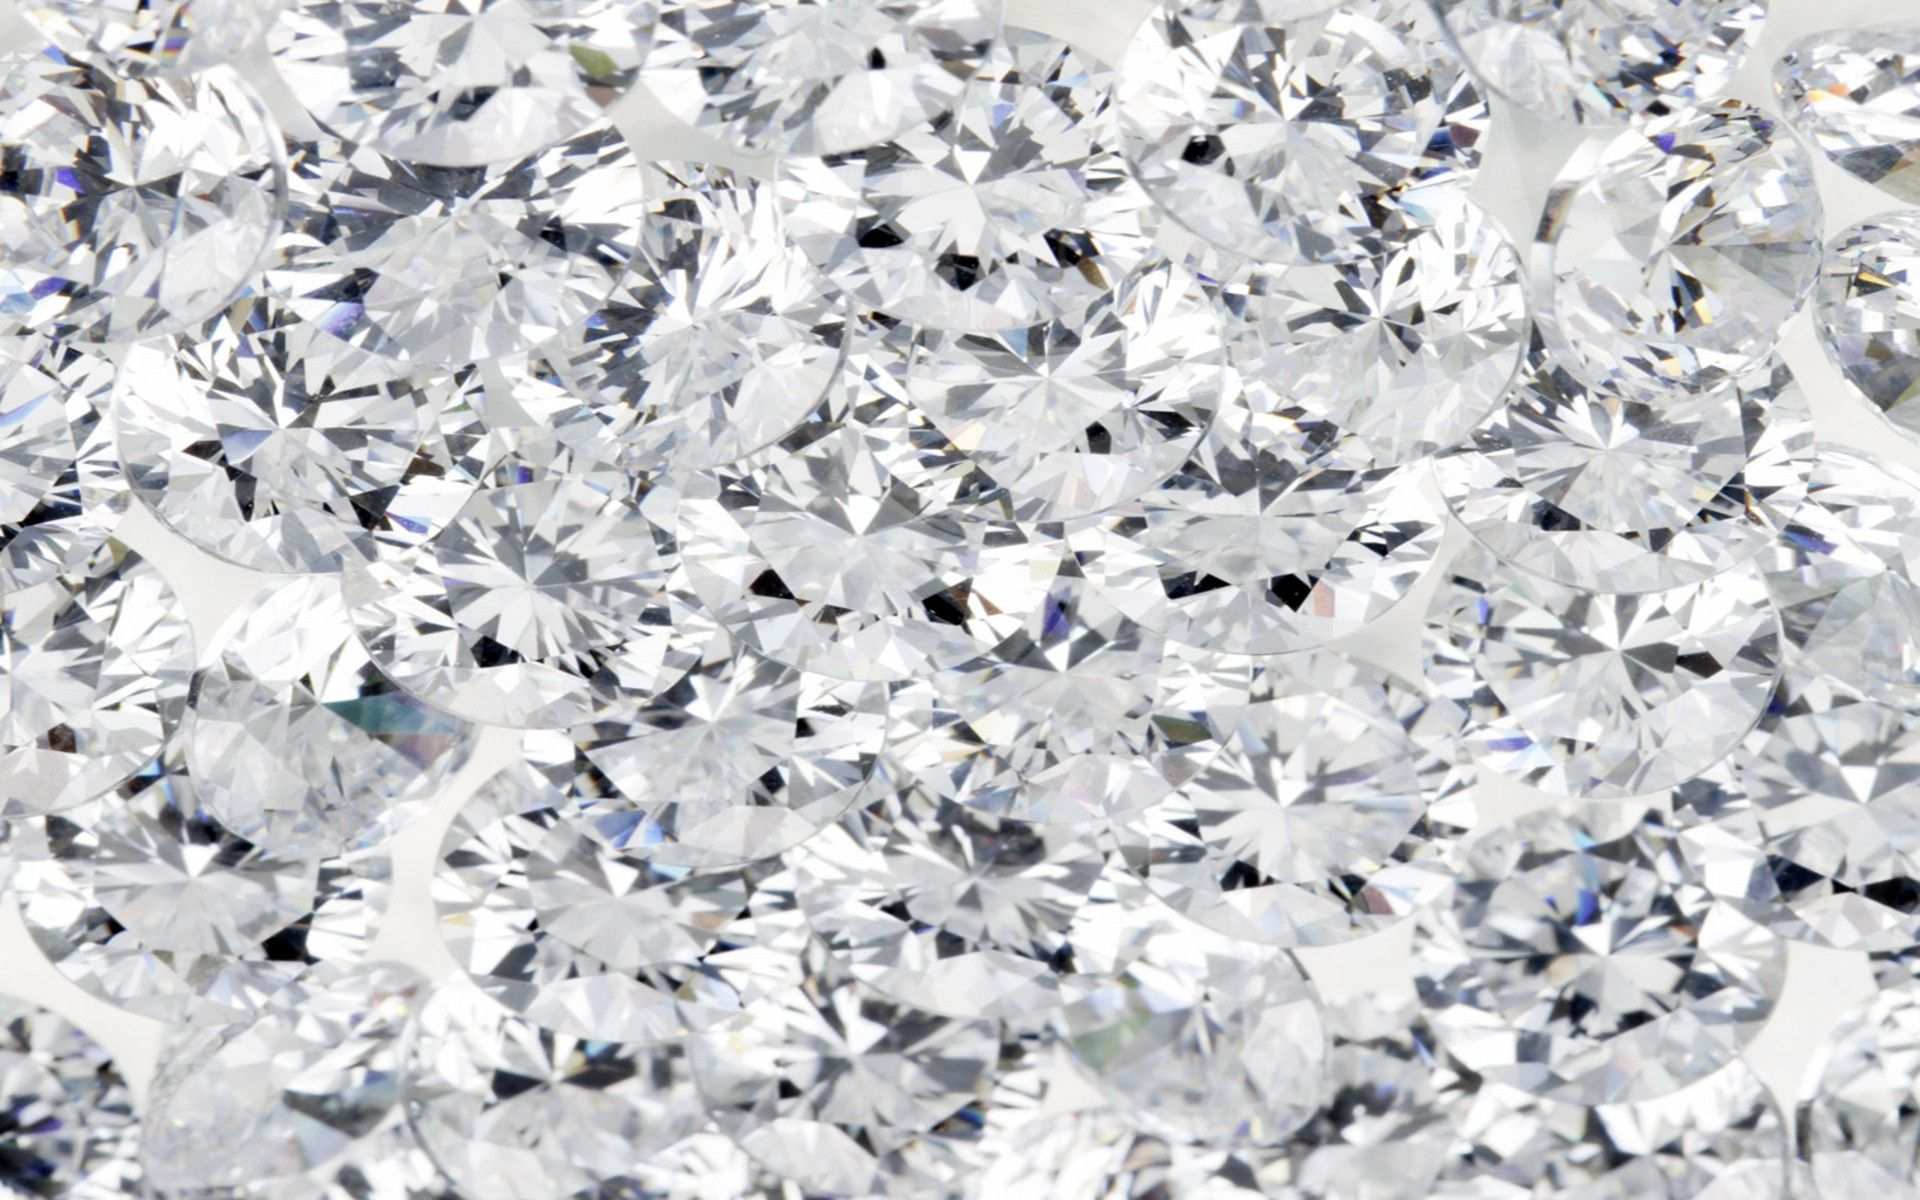 20 diamond backgrounds wallpapers images pictures design trends - Image wallpaper ...